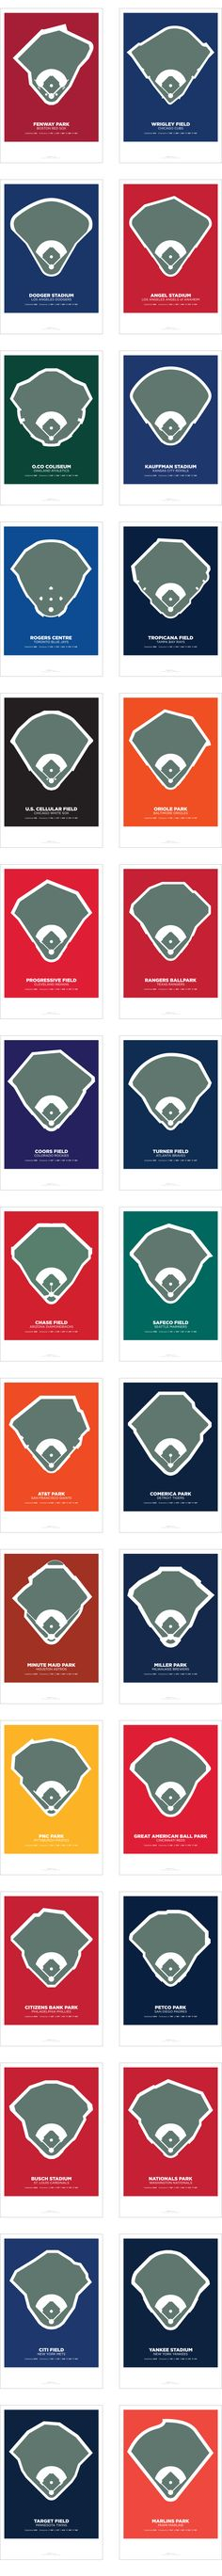 THIRTY81: The Fields of Baseball Poster Series, ReKicked by Lou Spirito — Kickstarter #baseballgame